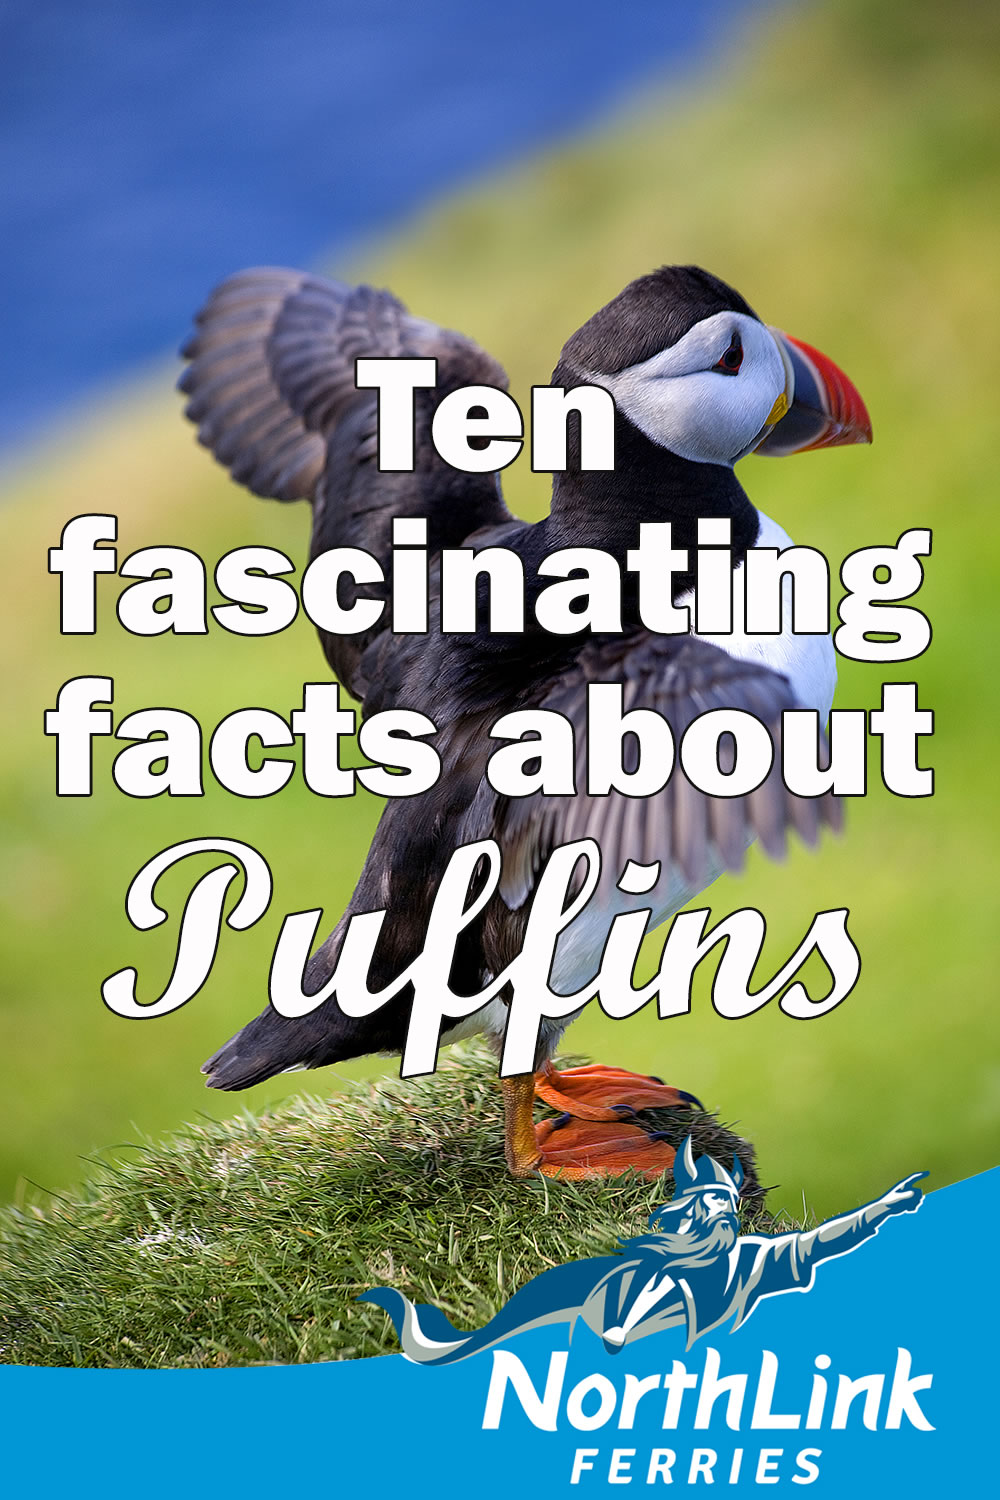 Ten fascinating facts about Puffins